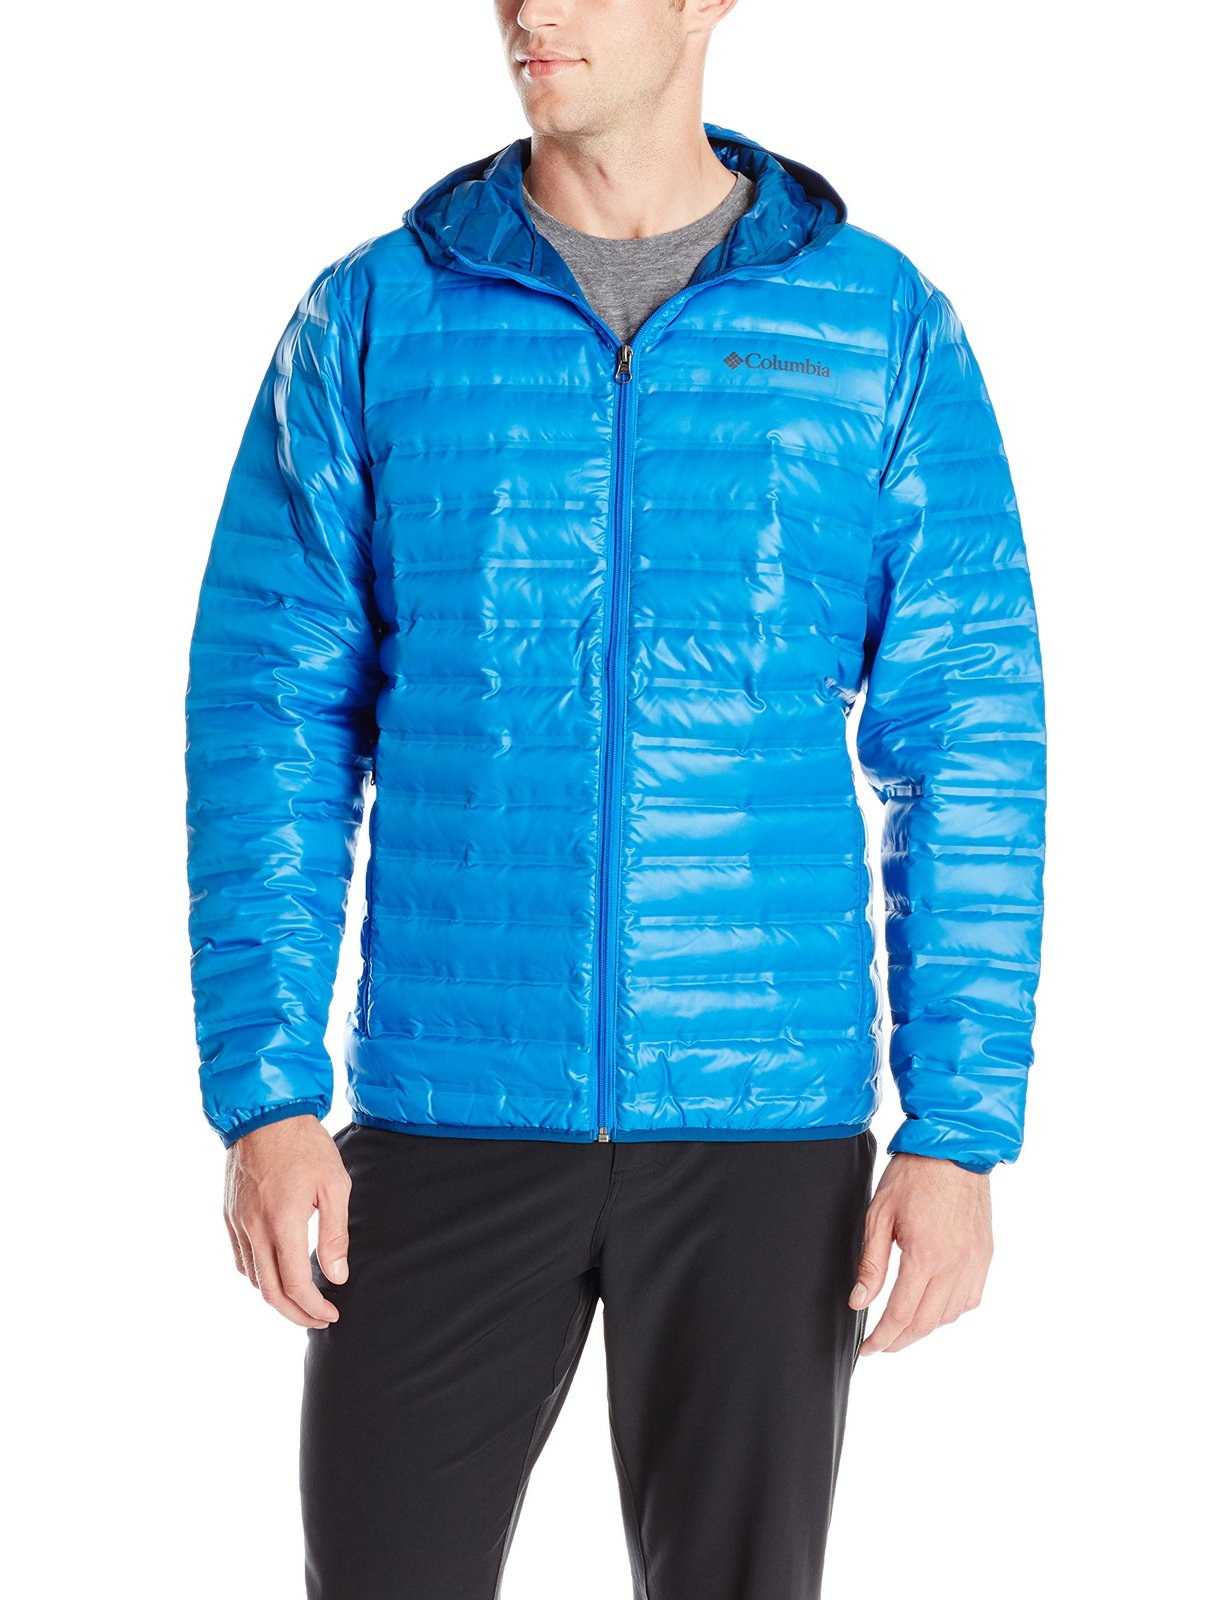 Columbia Sportswear Men's Flash Forward Down HDD Jacket, Hyper Blue, Medium